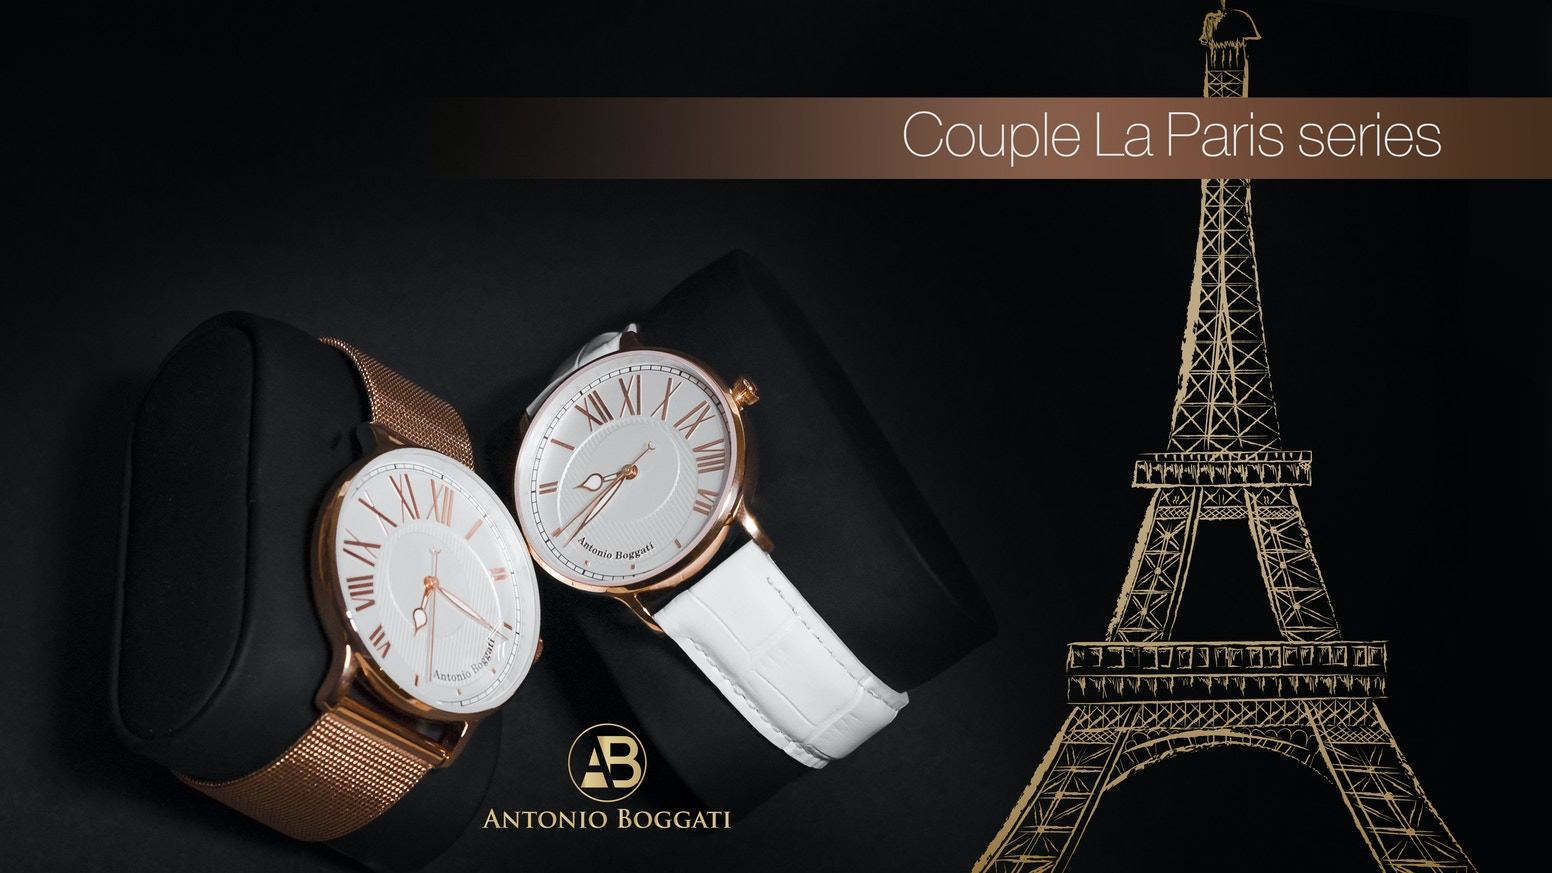 The chemistry between a man and woman united in a luxury watch collection.